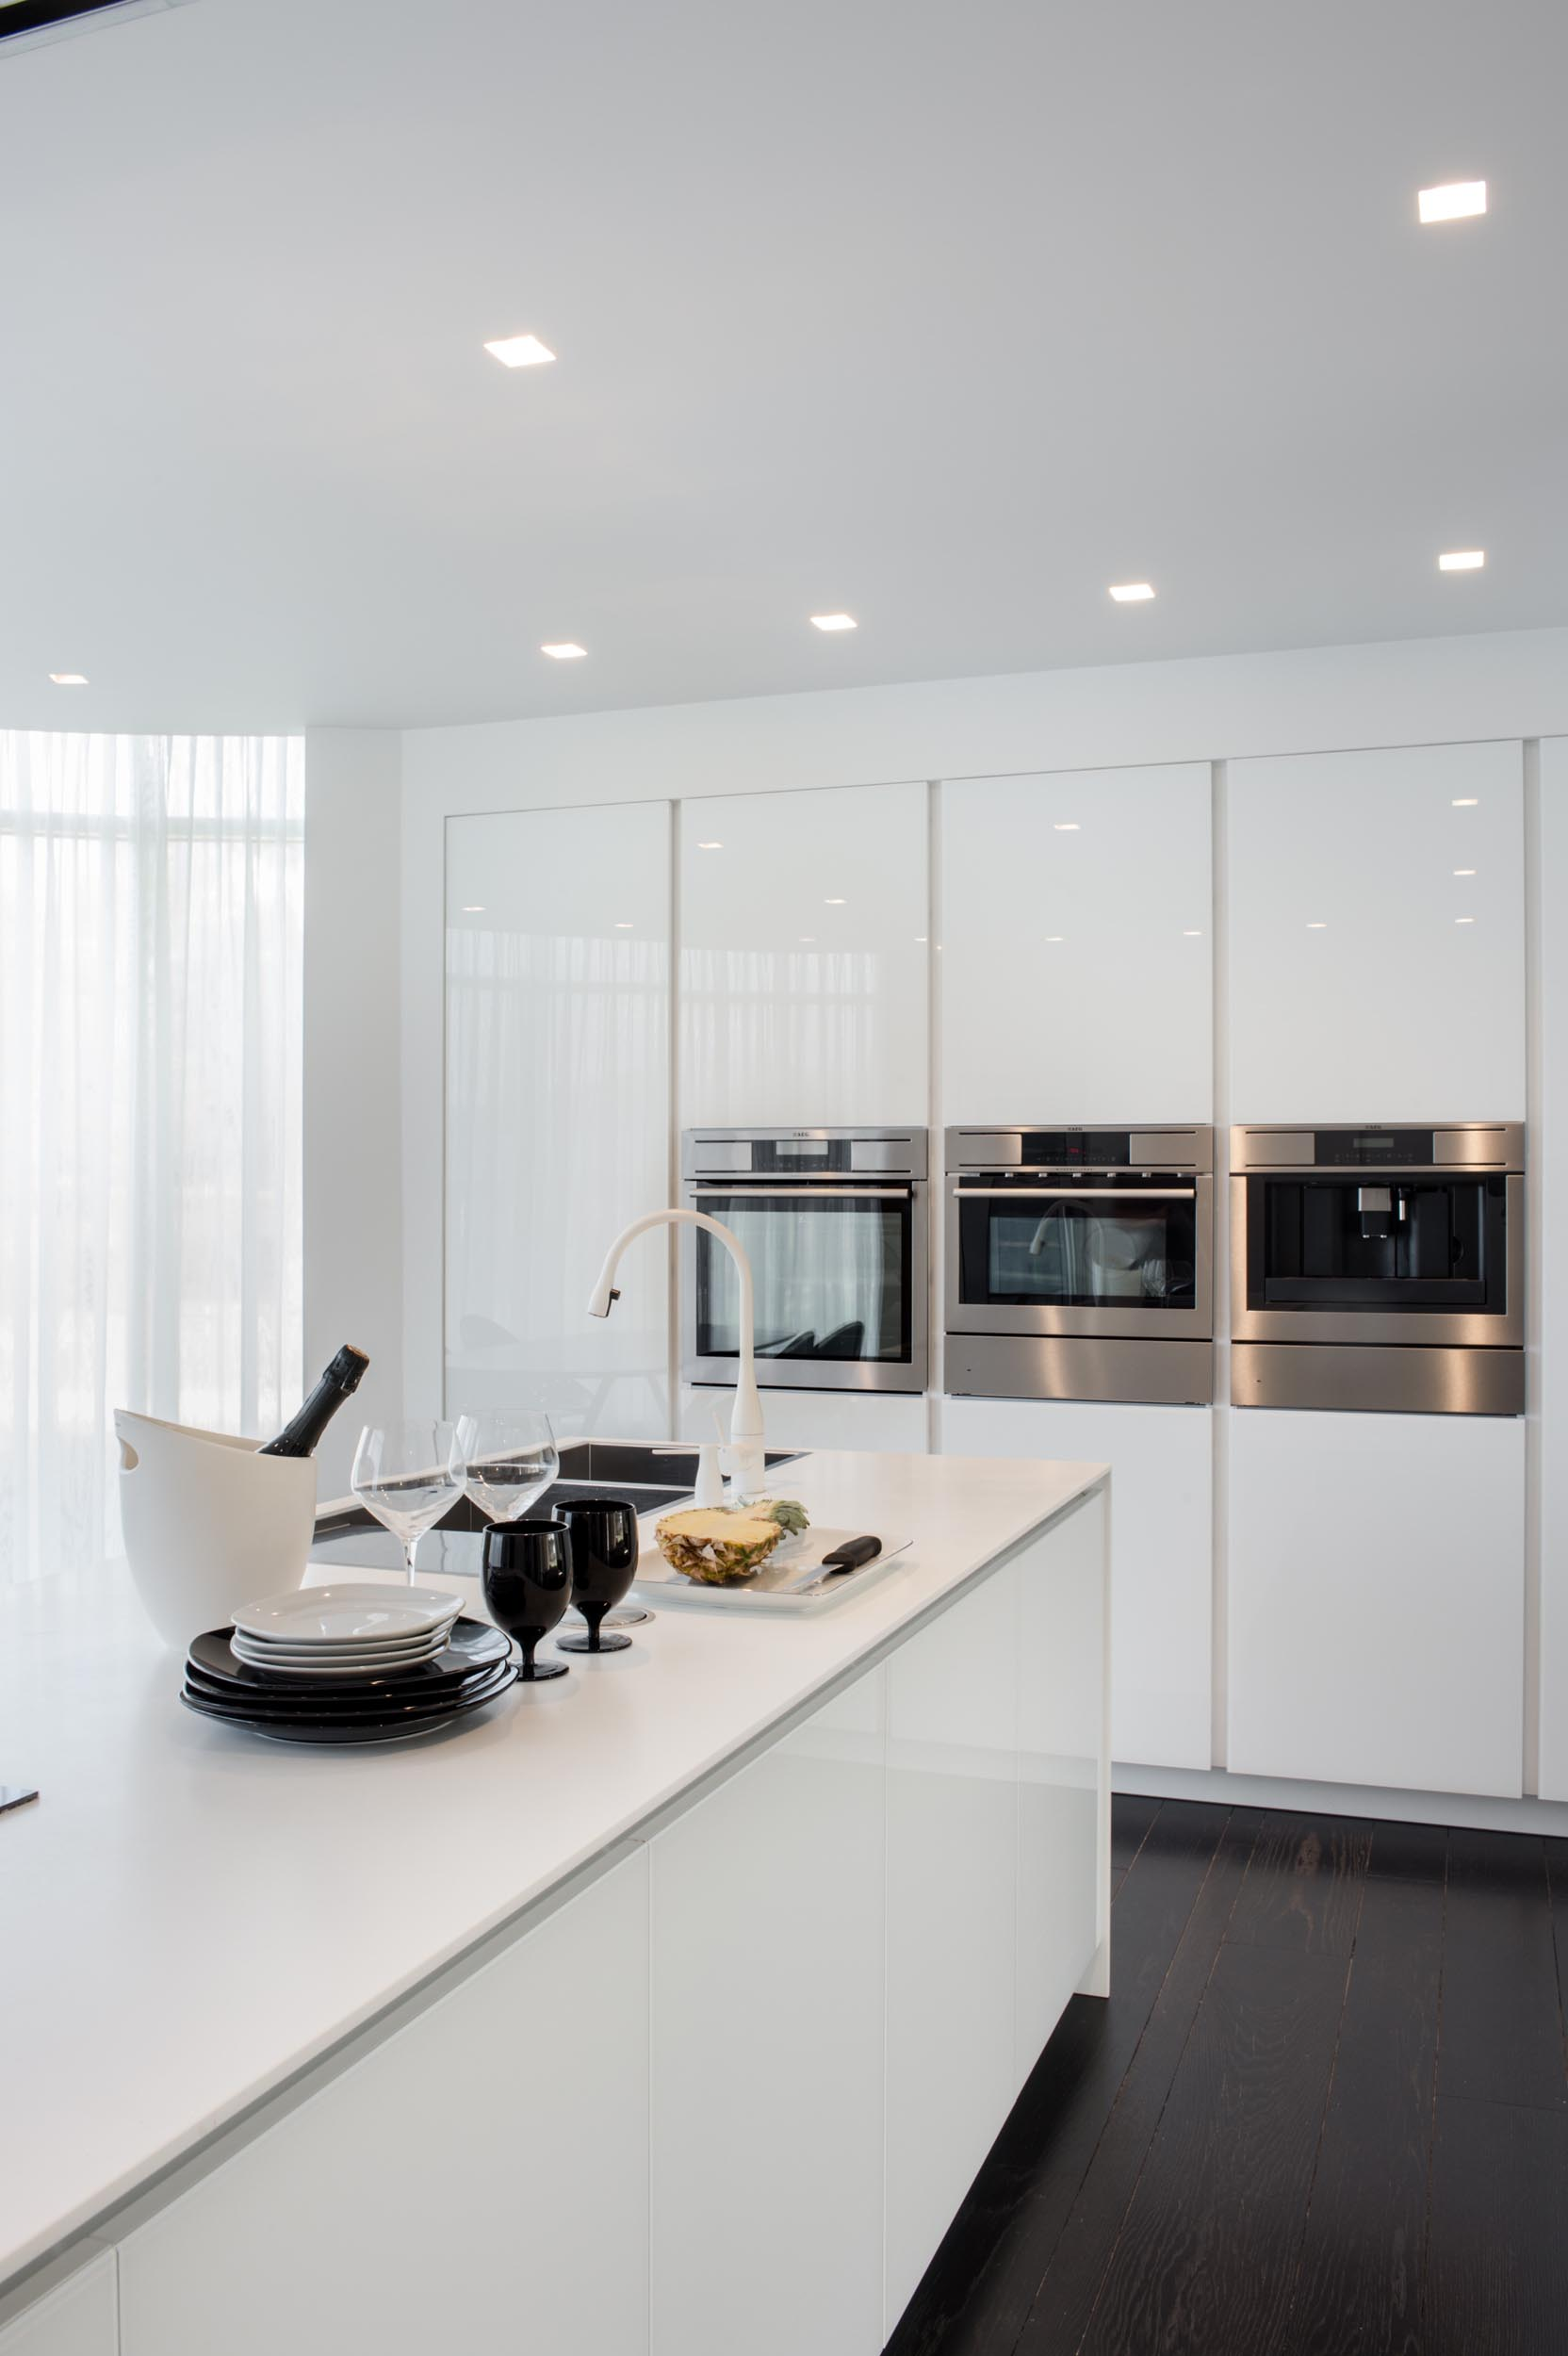 A modern kitchen with minimalist white cabinets and an island.